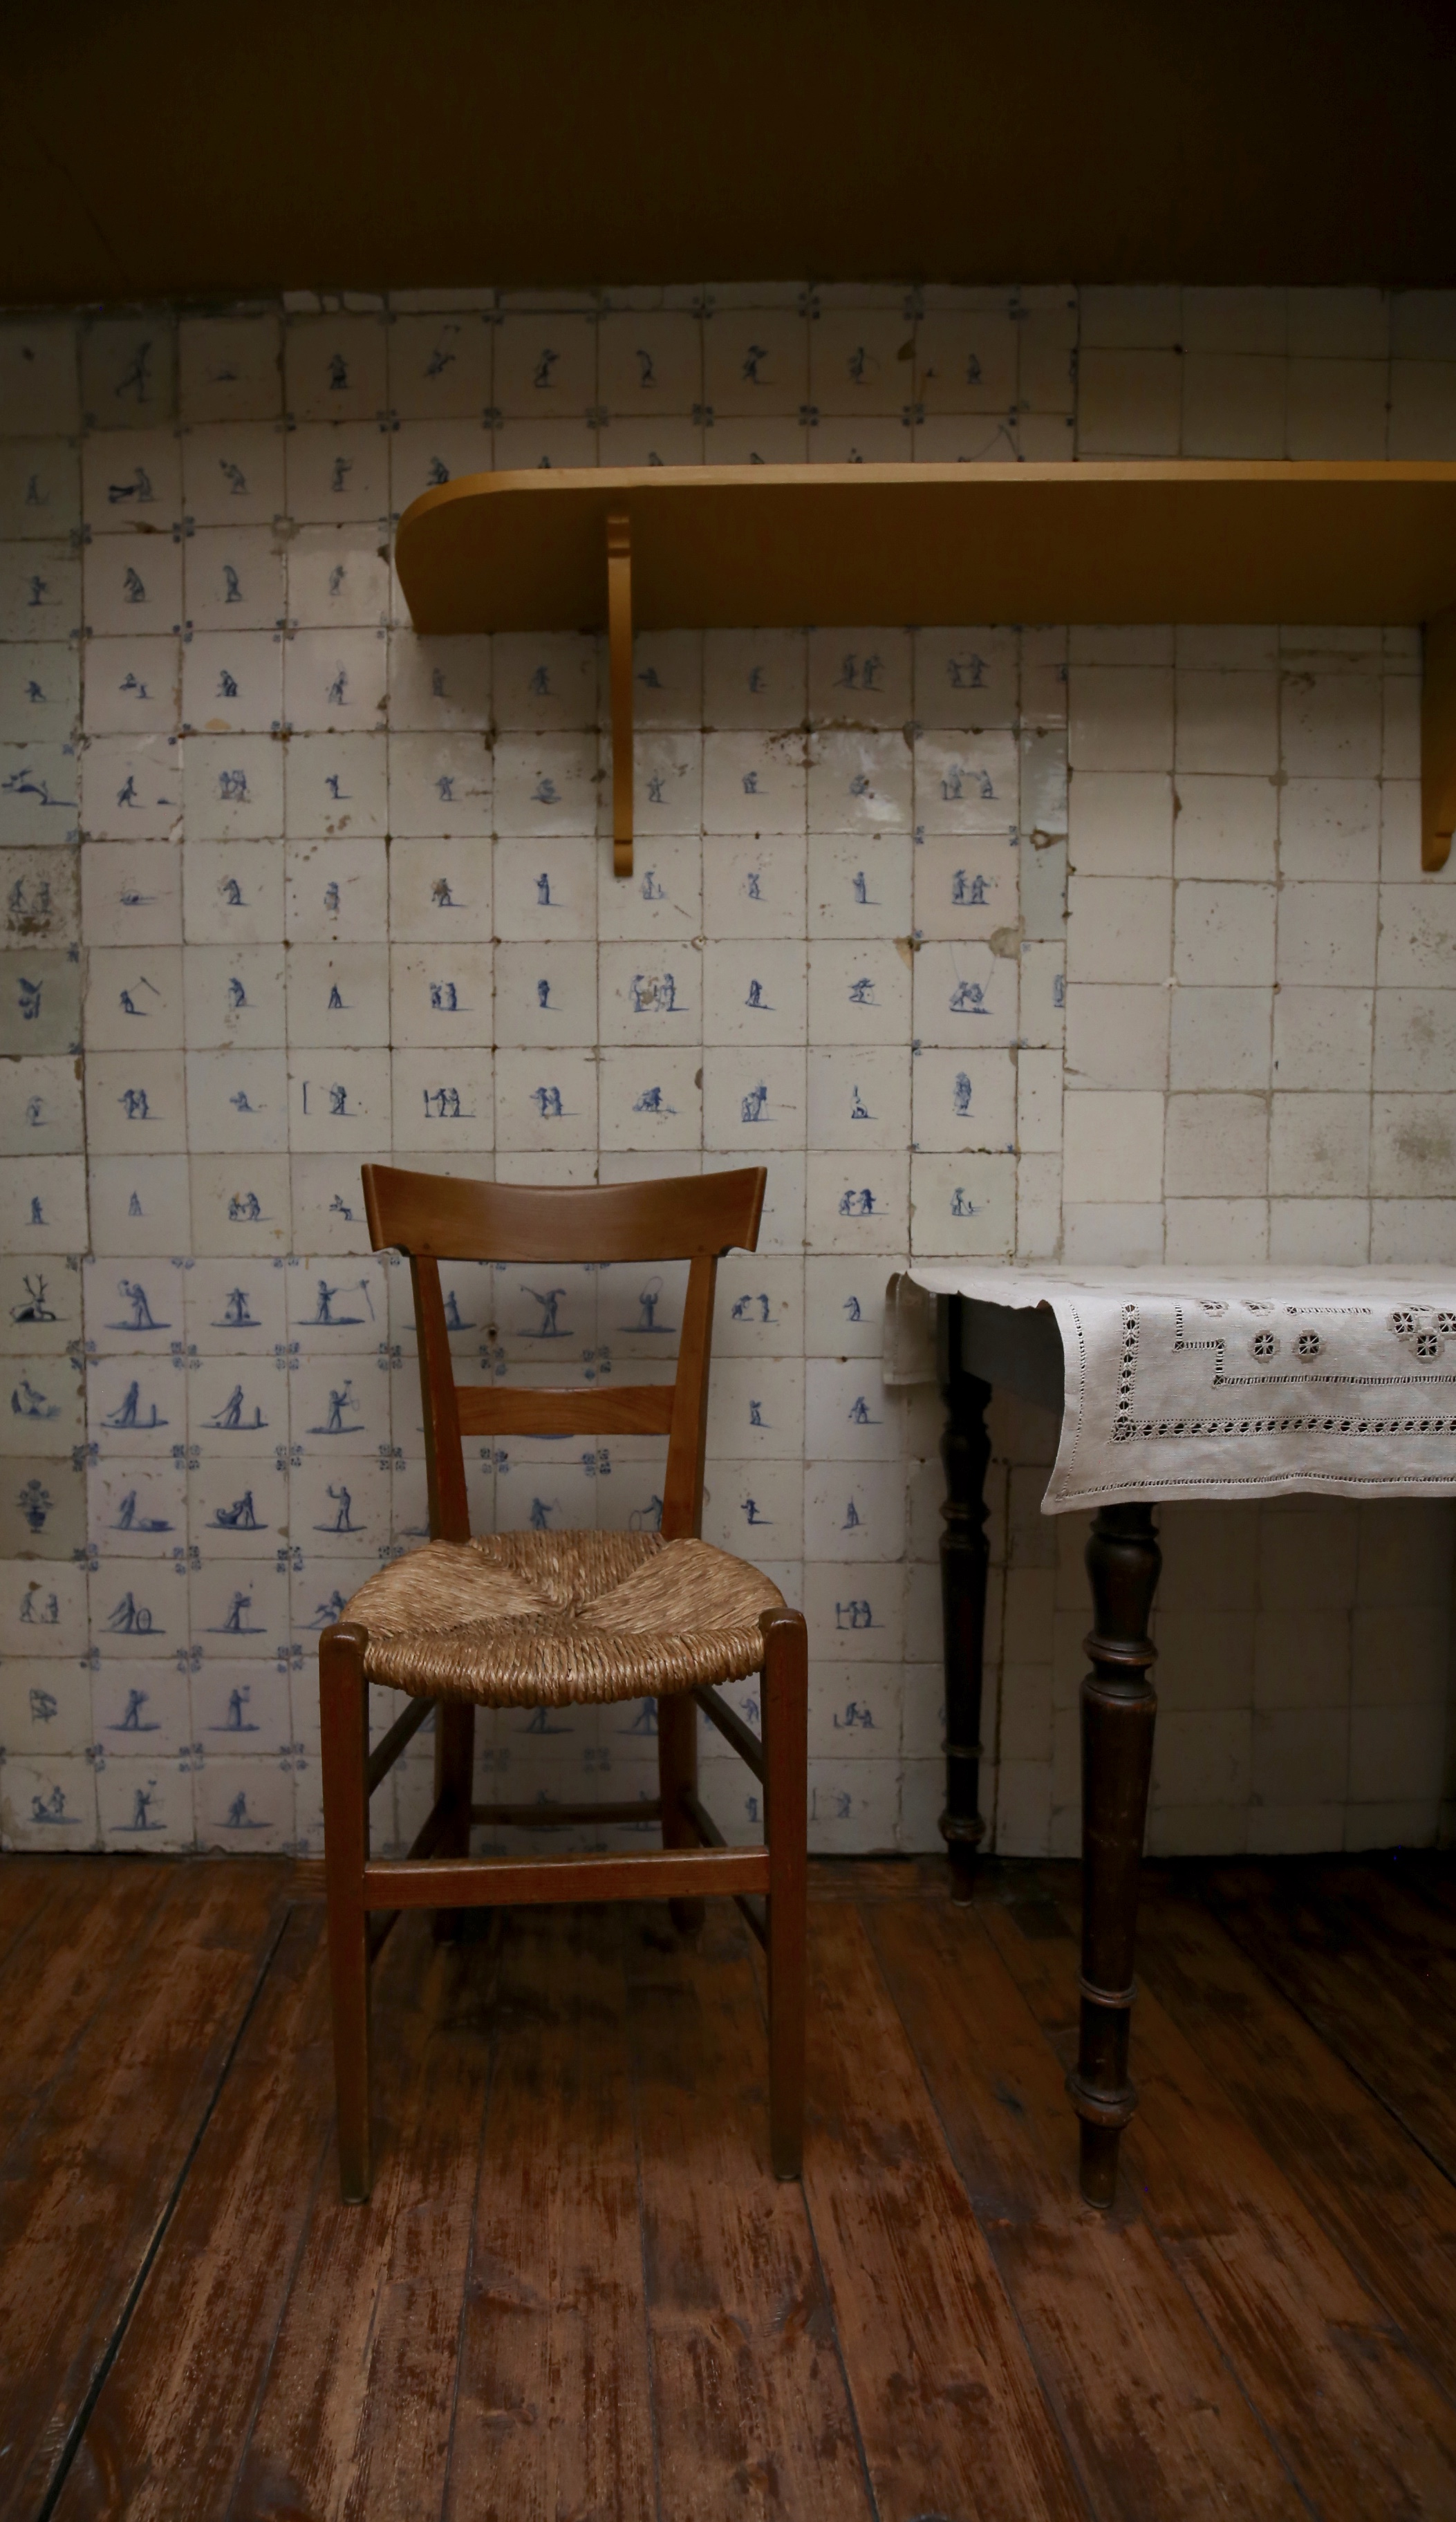 A beautiful old wicker chair in a dutch tiled kitchen - homes like a painting.